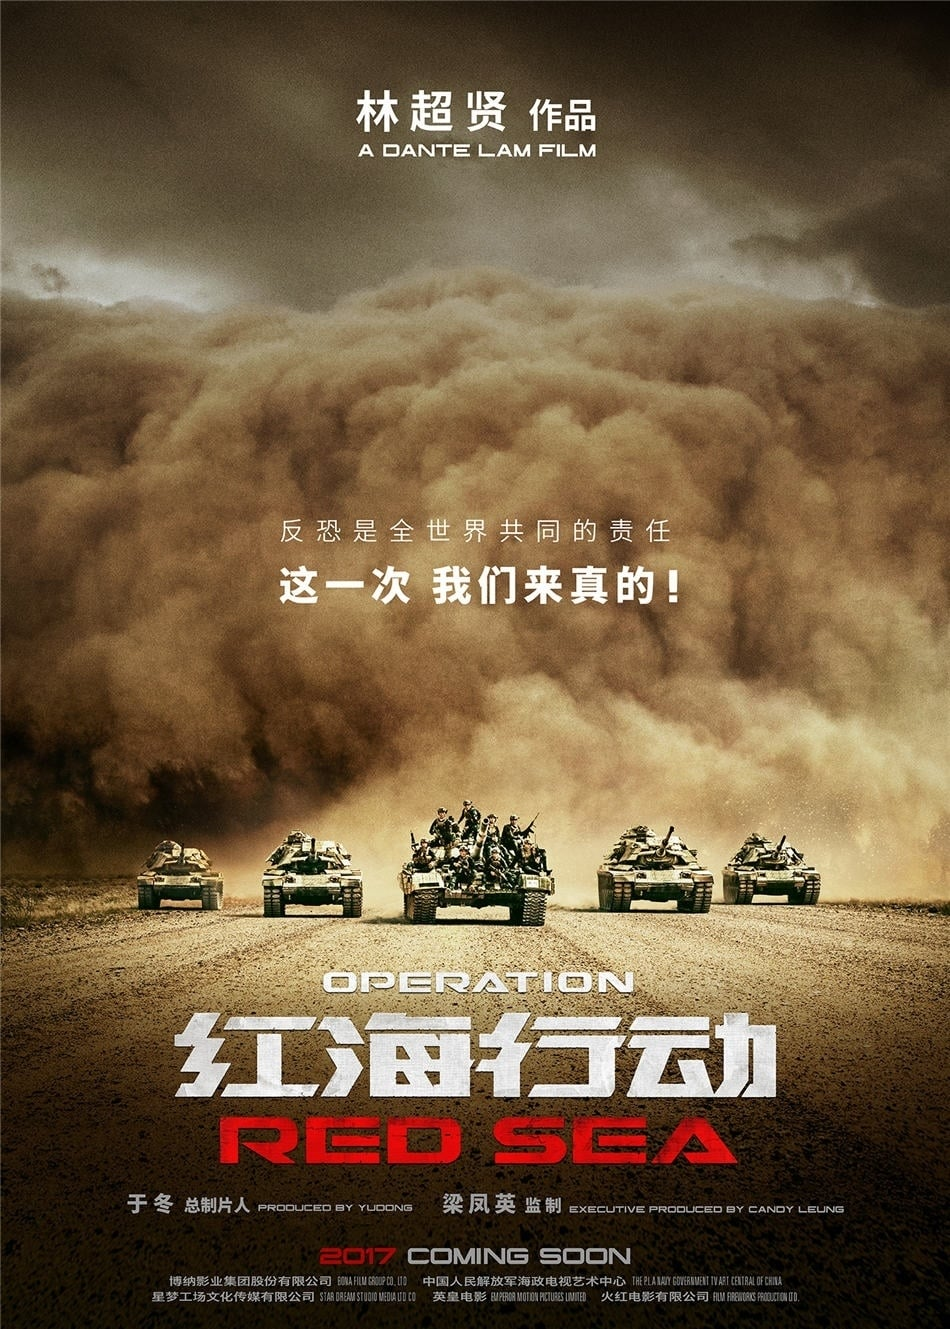 image for Operation Red Sea